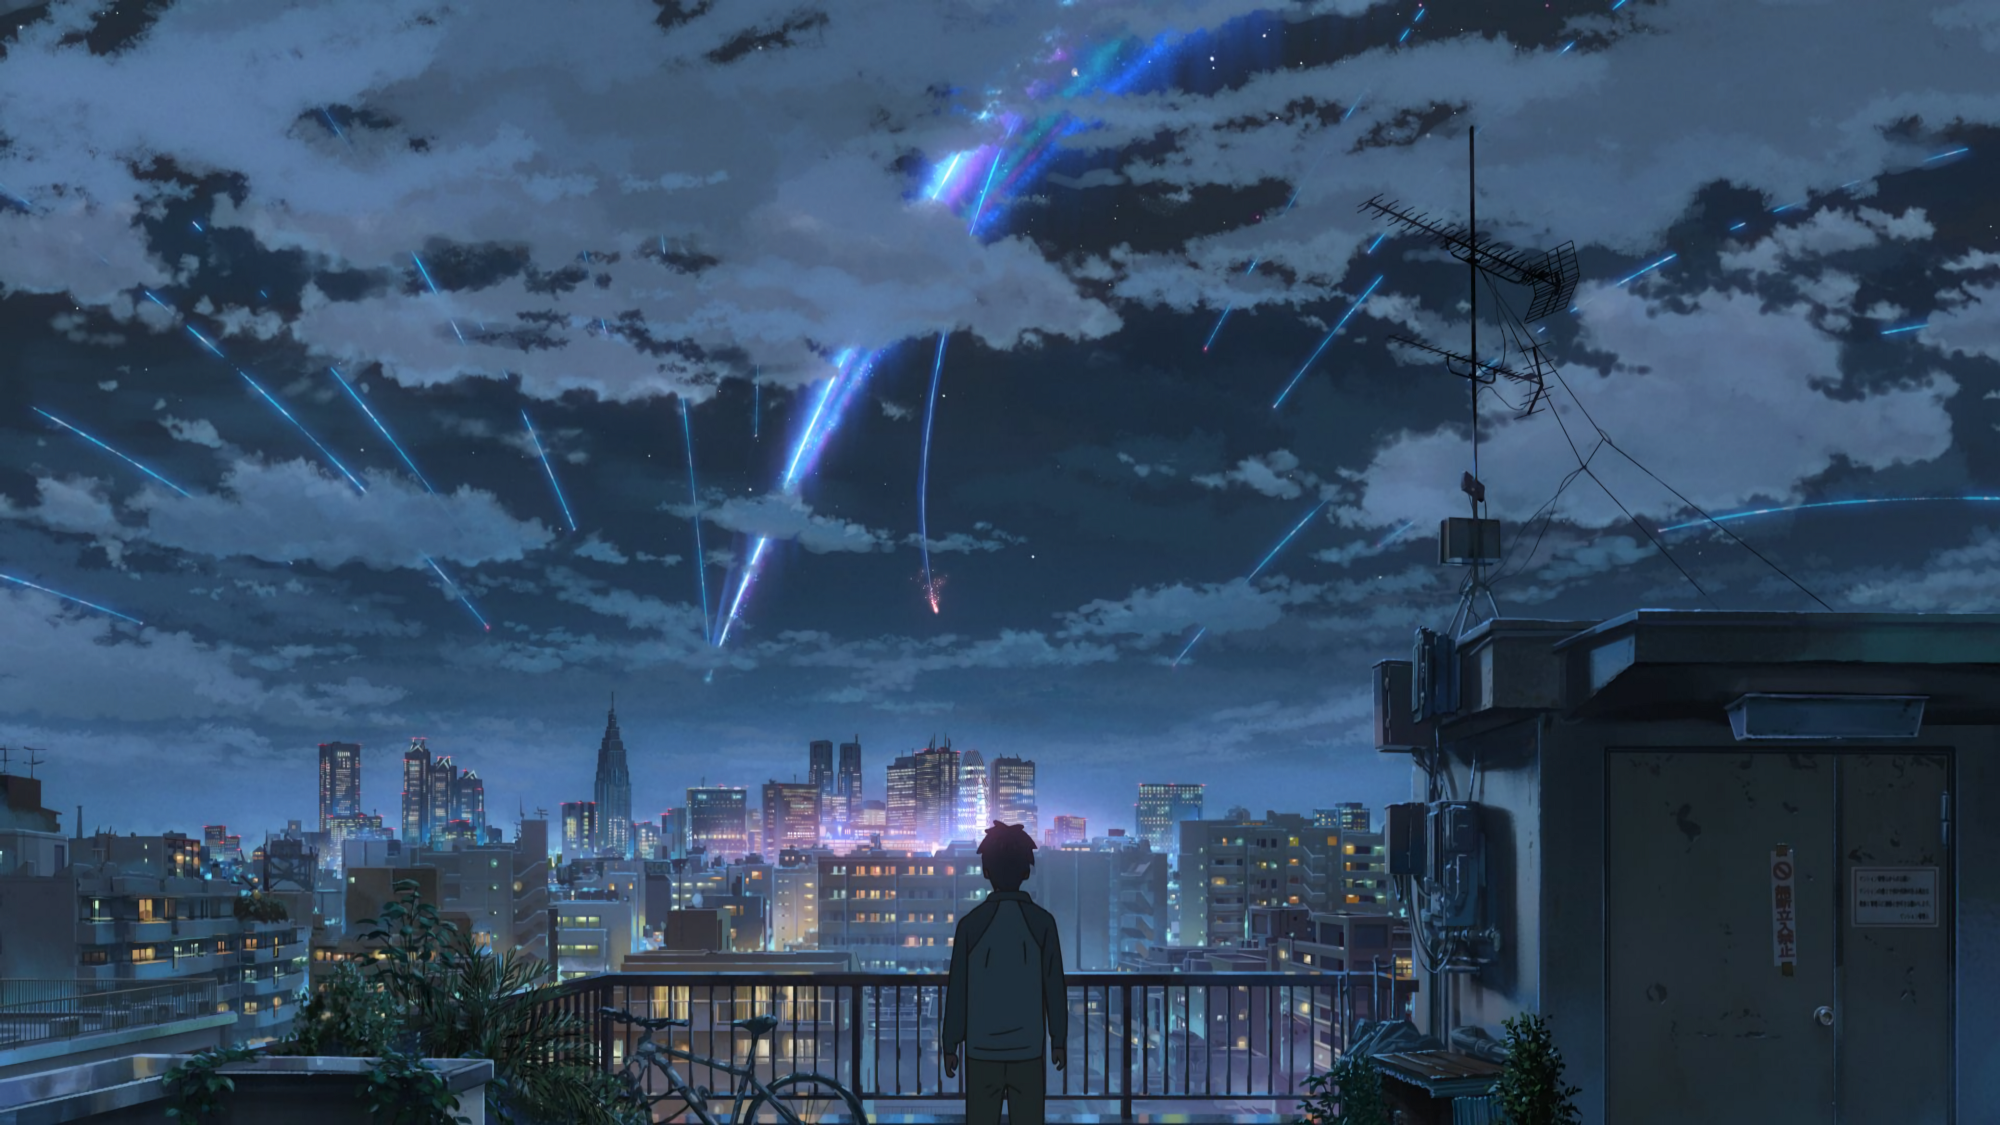 Makoto Shinkai Movies Always Have Outlandishly Beautiful Skies If You Think This Is What A Shooting Star Looks Like In Real Life